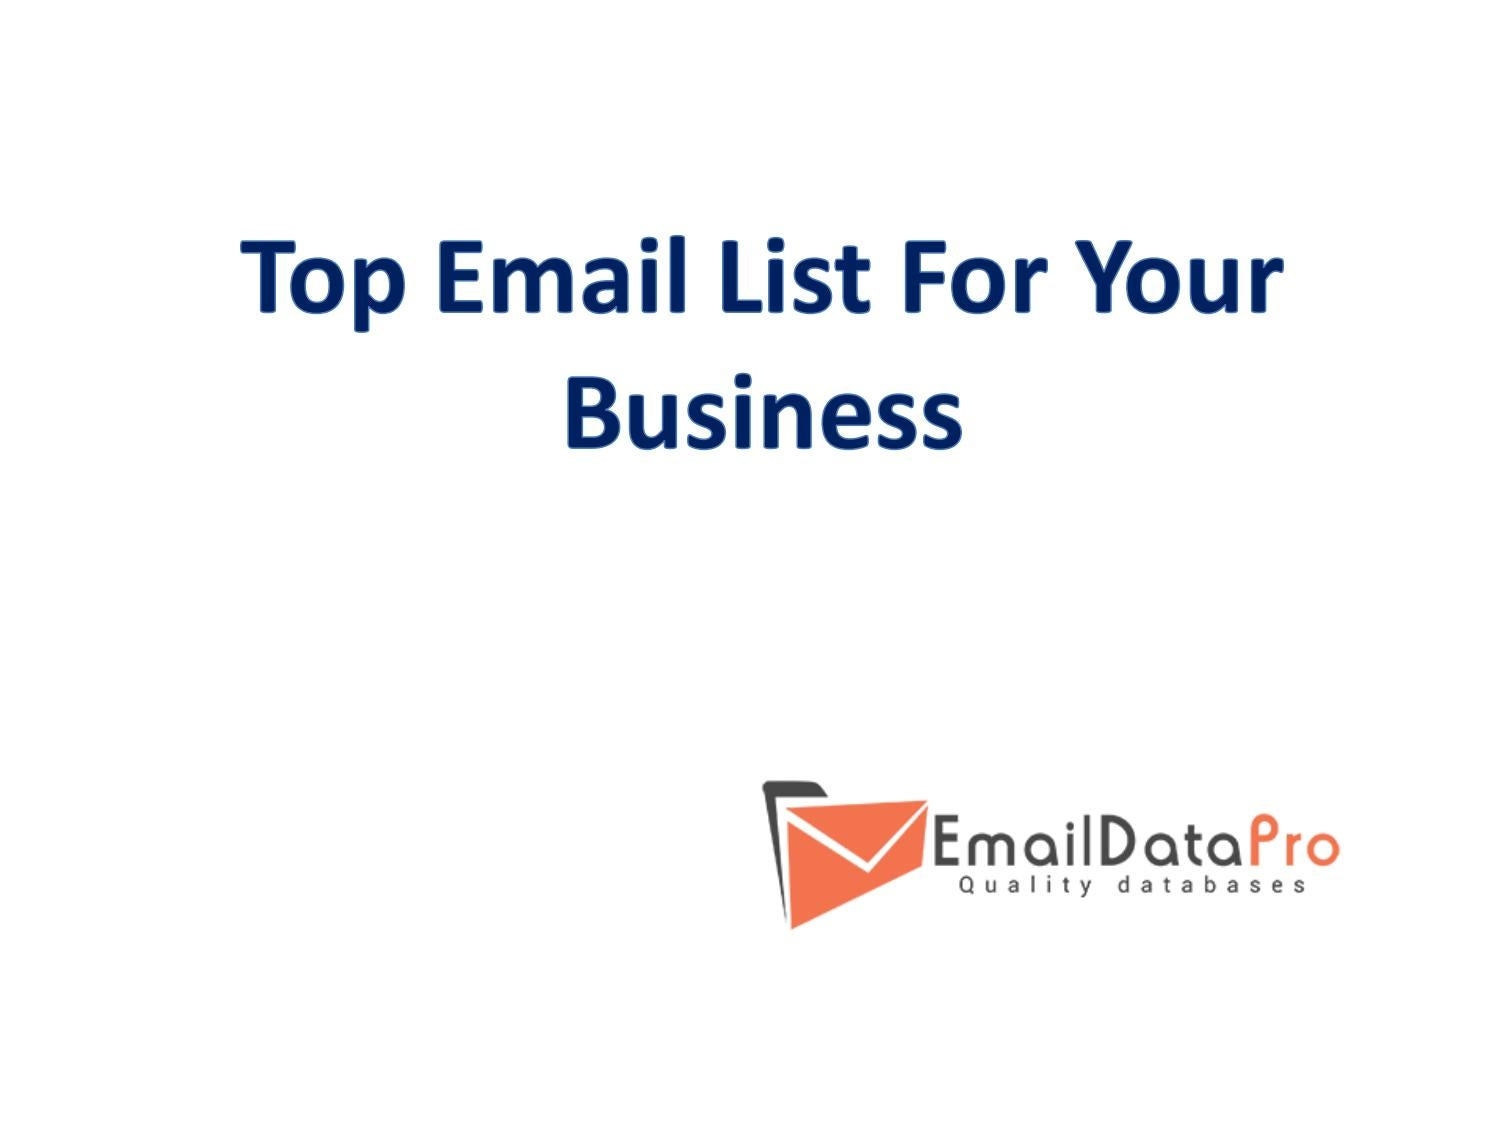 Buy USA Business Email Lists and Email Databases by Emaildata Pro